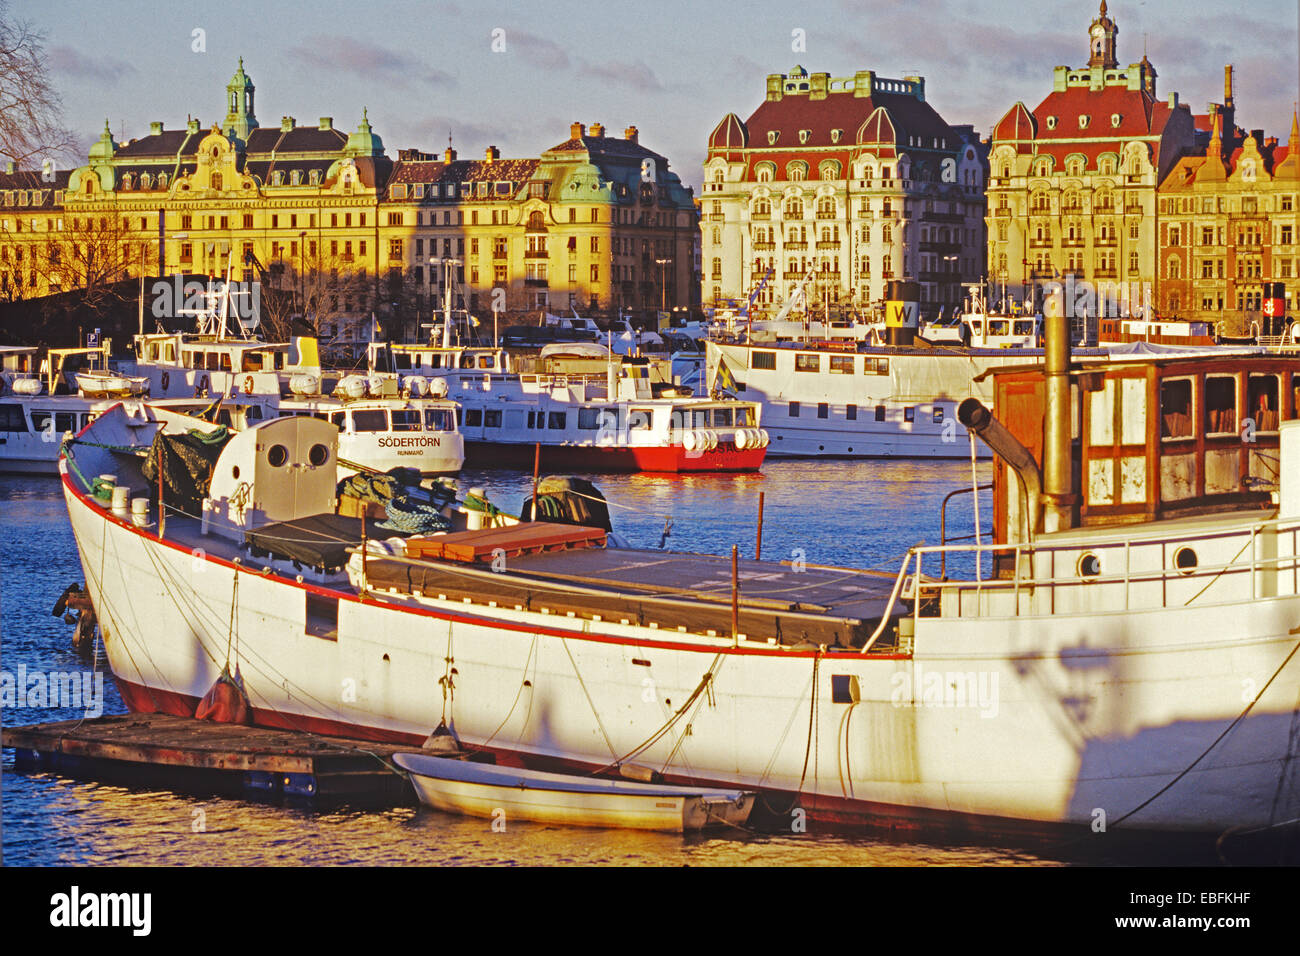 City view with Boats, Nybroviken, Stockholm, Sweden - Stock Image